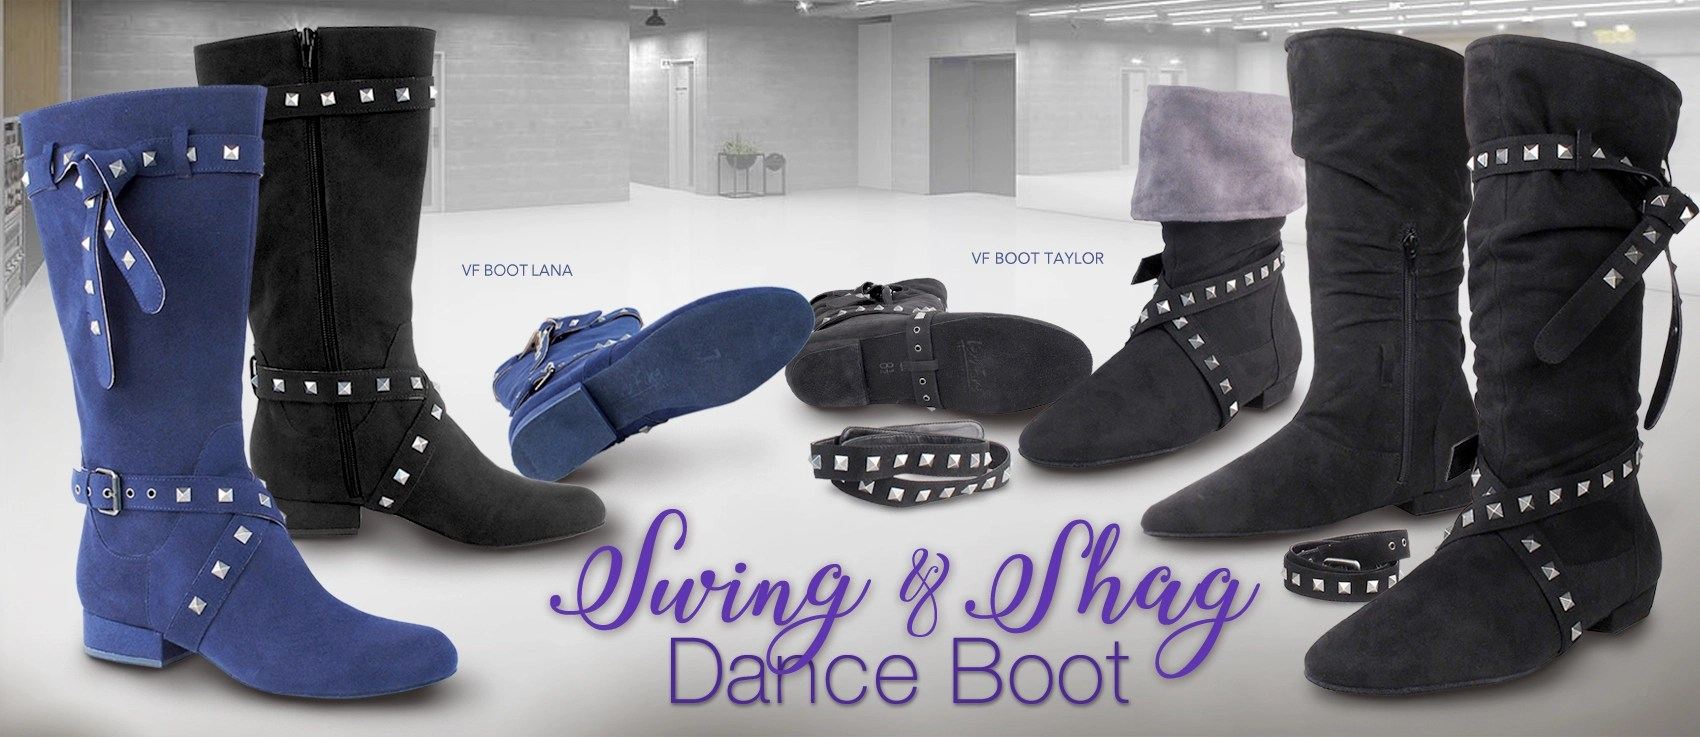 Very Fine Dancesport Shoes Company The Manufacturer Of Dance